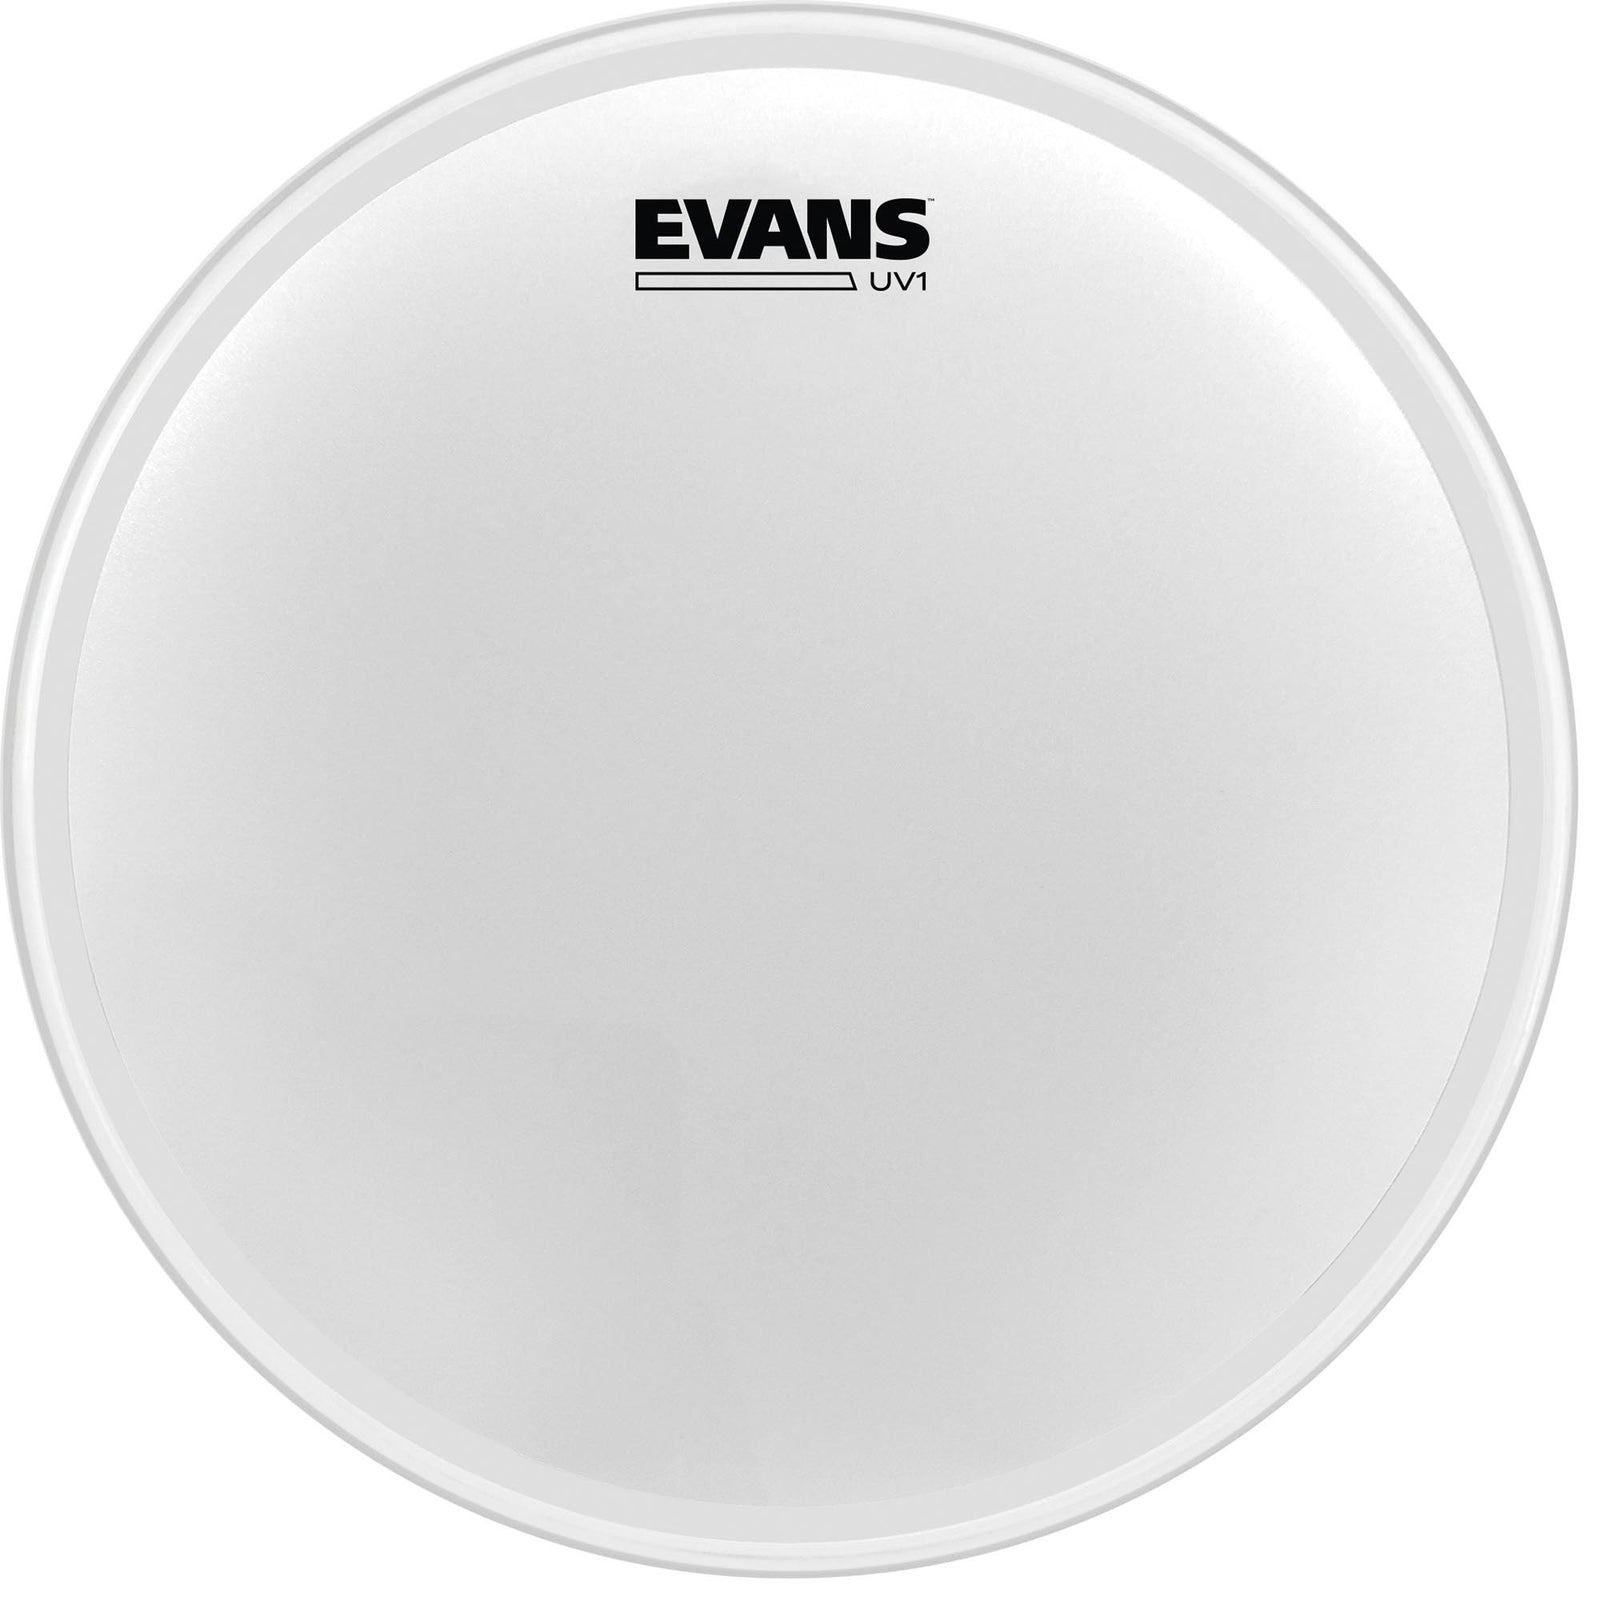 "Evans 20"" UV1 Bass Head"